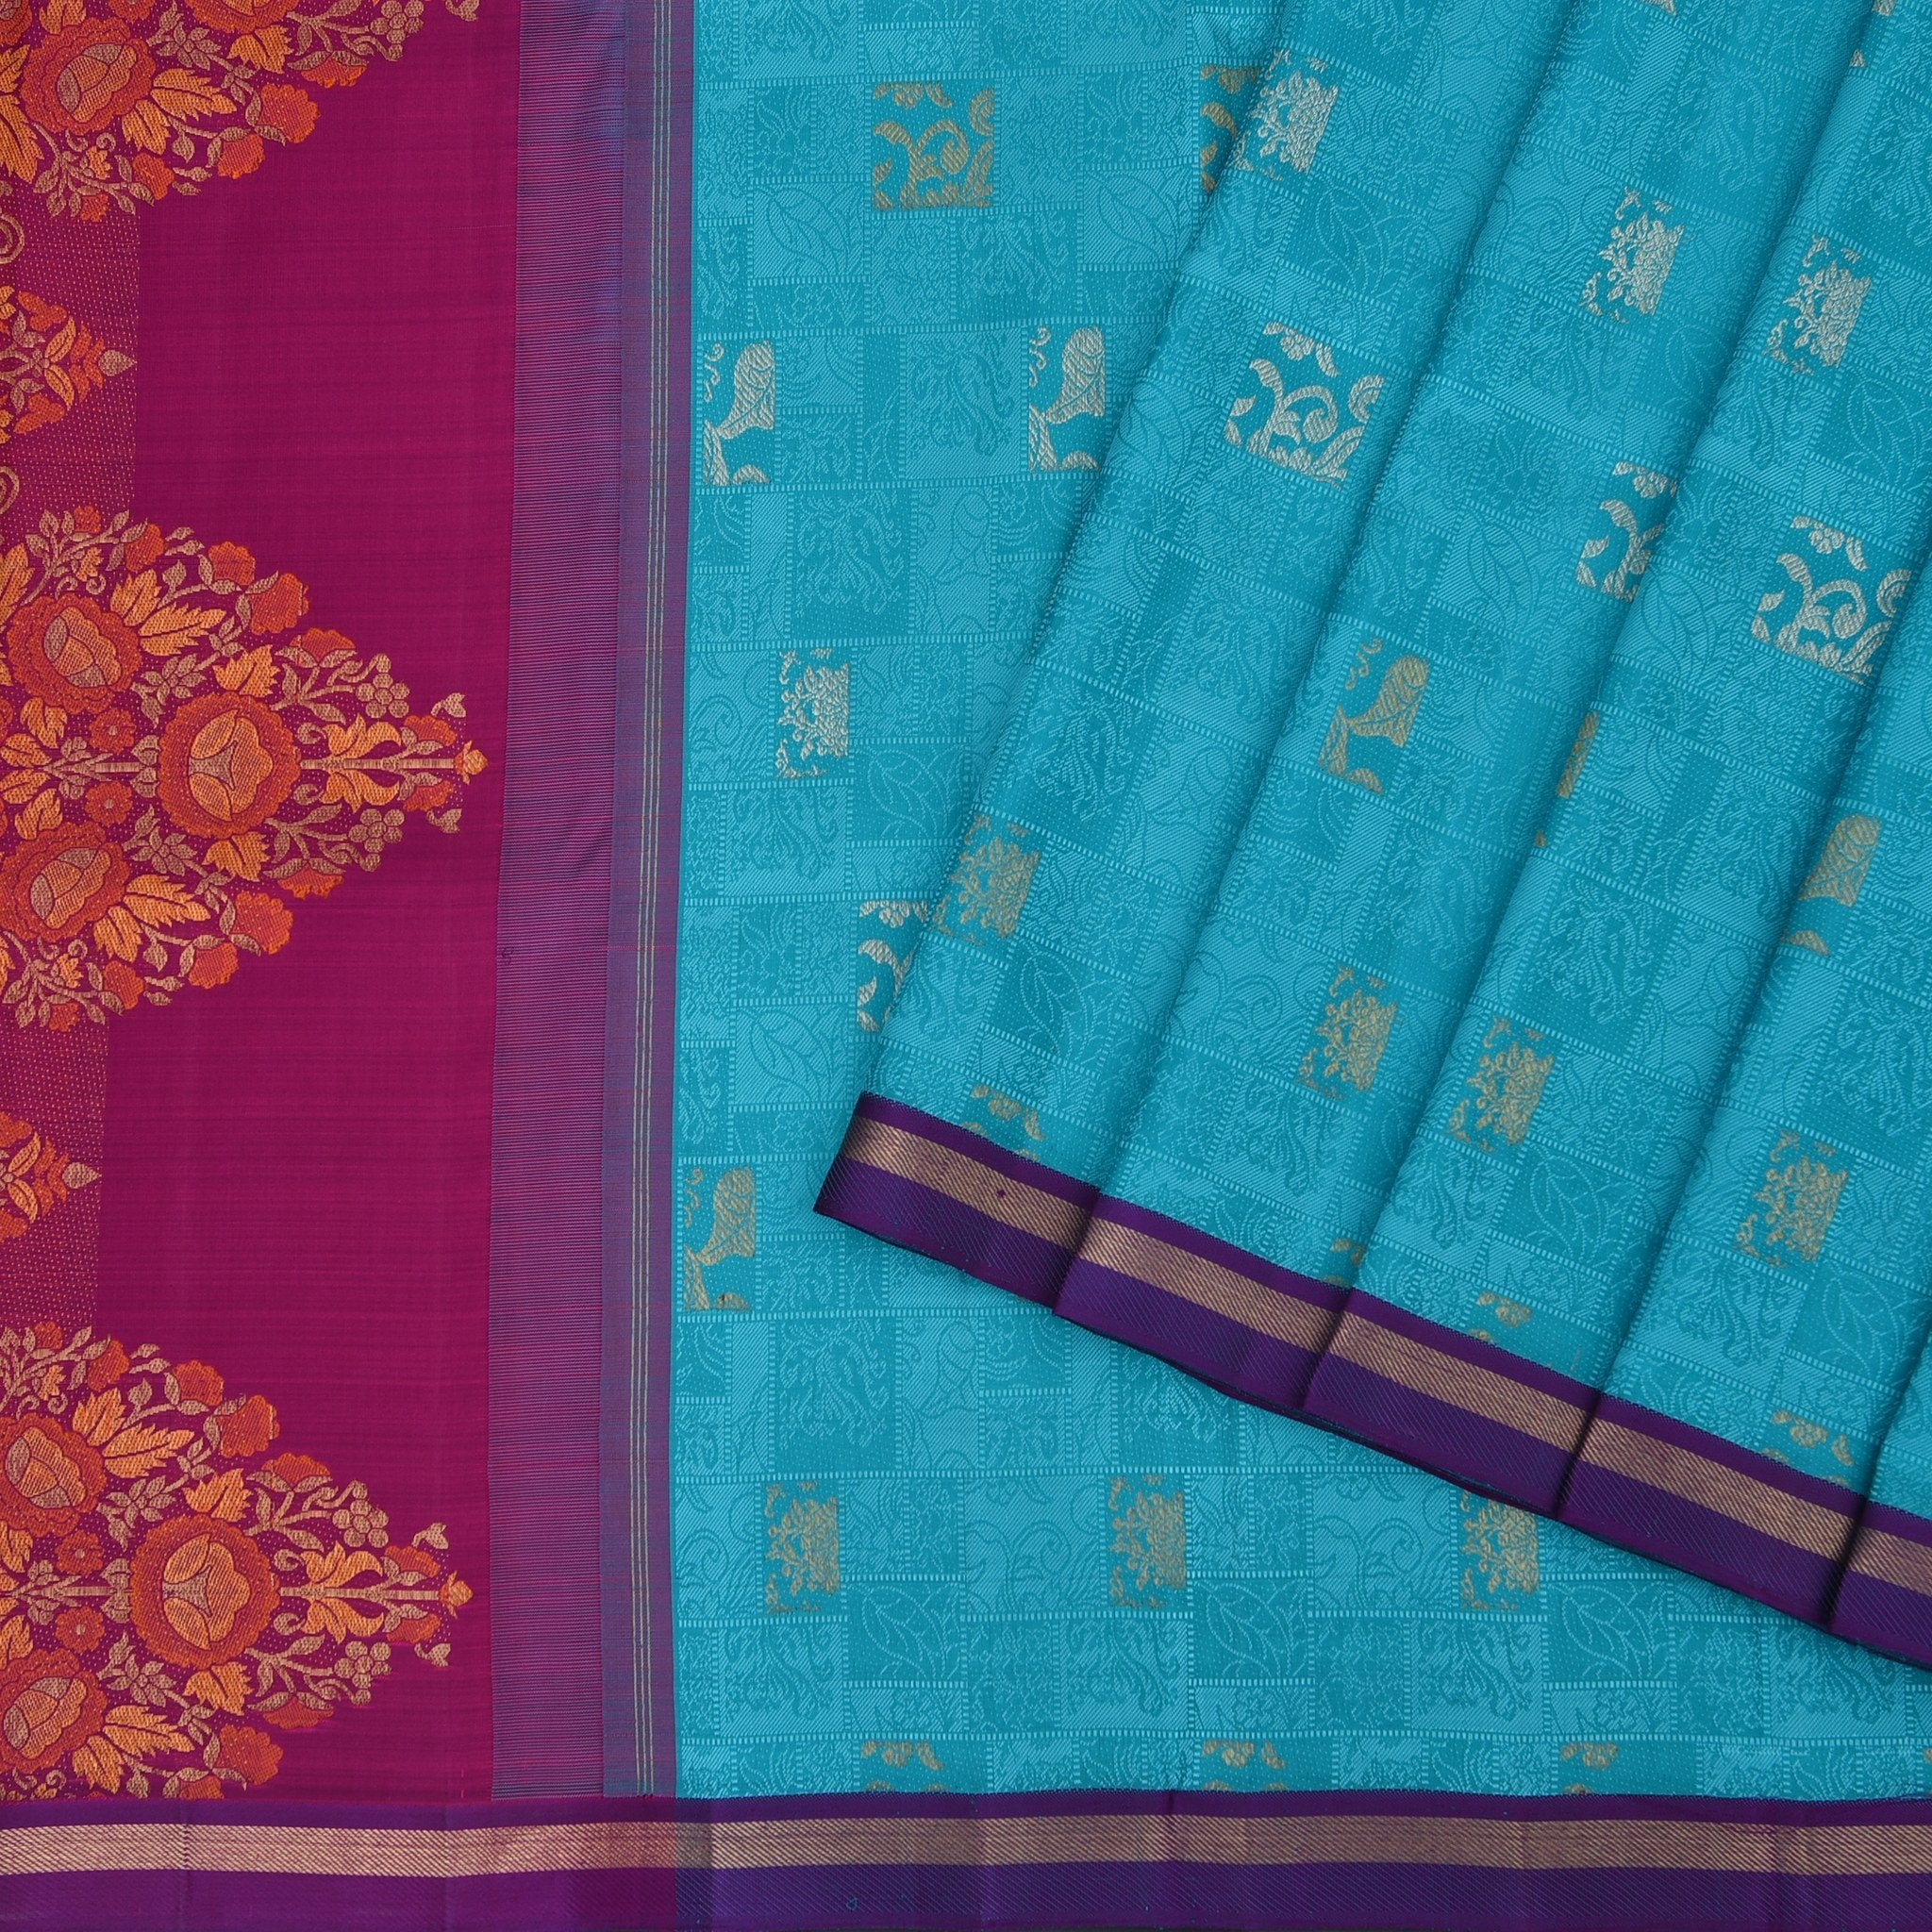 Teal-Blue-self-woven-Borderless-Kanjivaram-Handloom-Silk-Saree